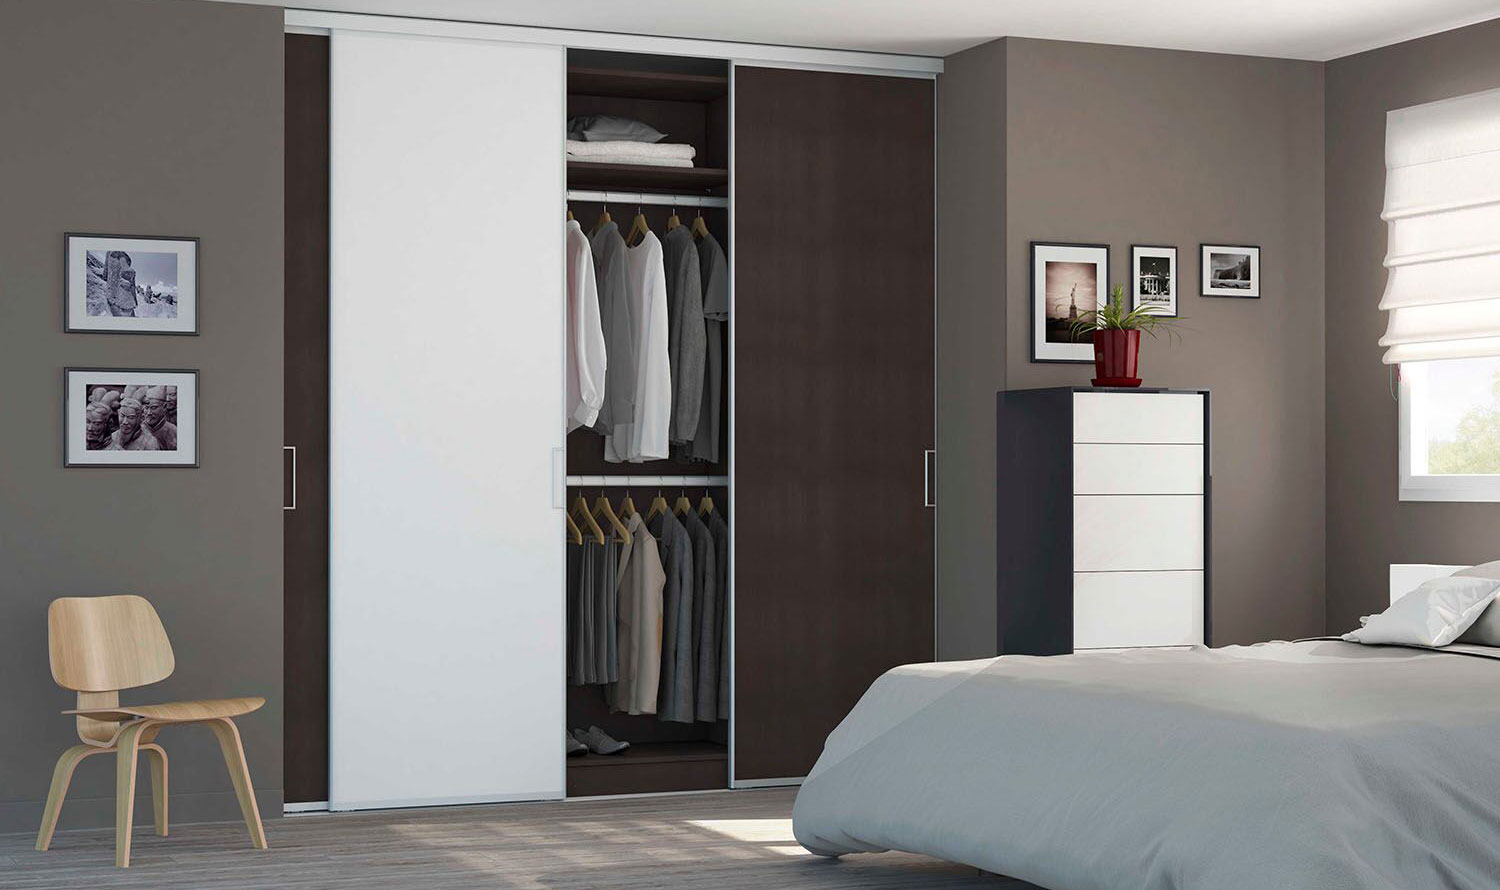 cr er son dressing pas cher crer son dressing pas cher affordable comment faire son dressing. Black Bedroom Furniture Sets. Home Design Ideas